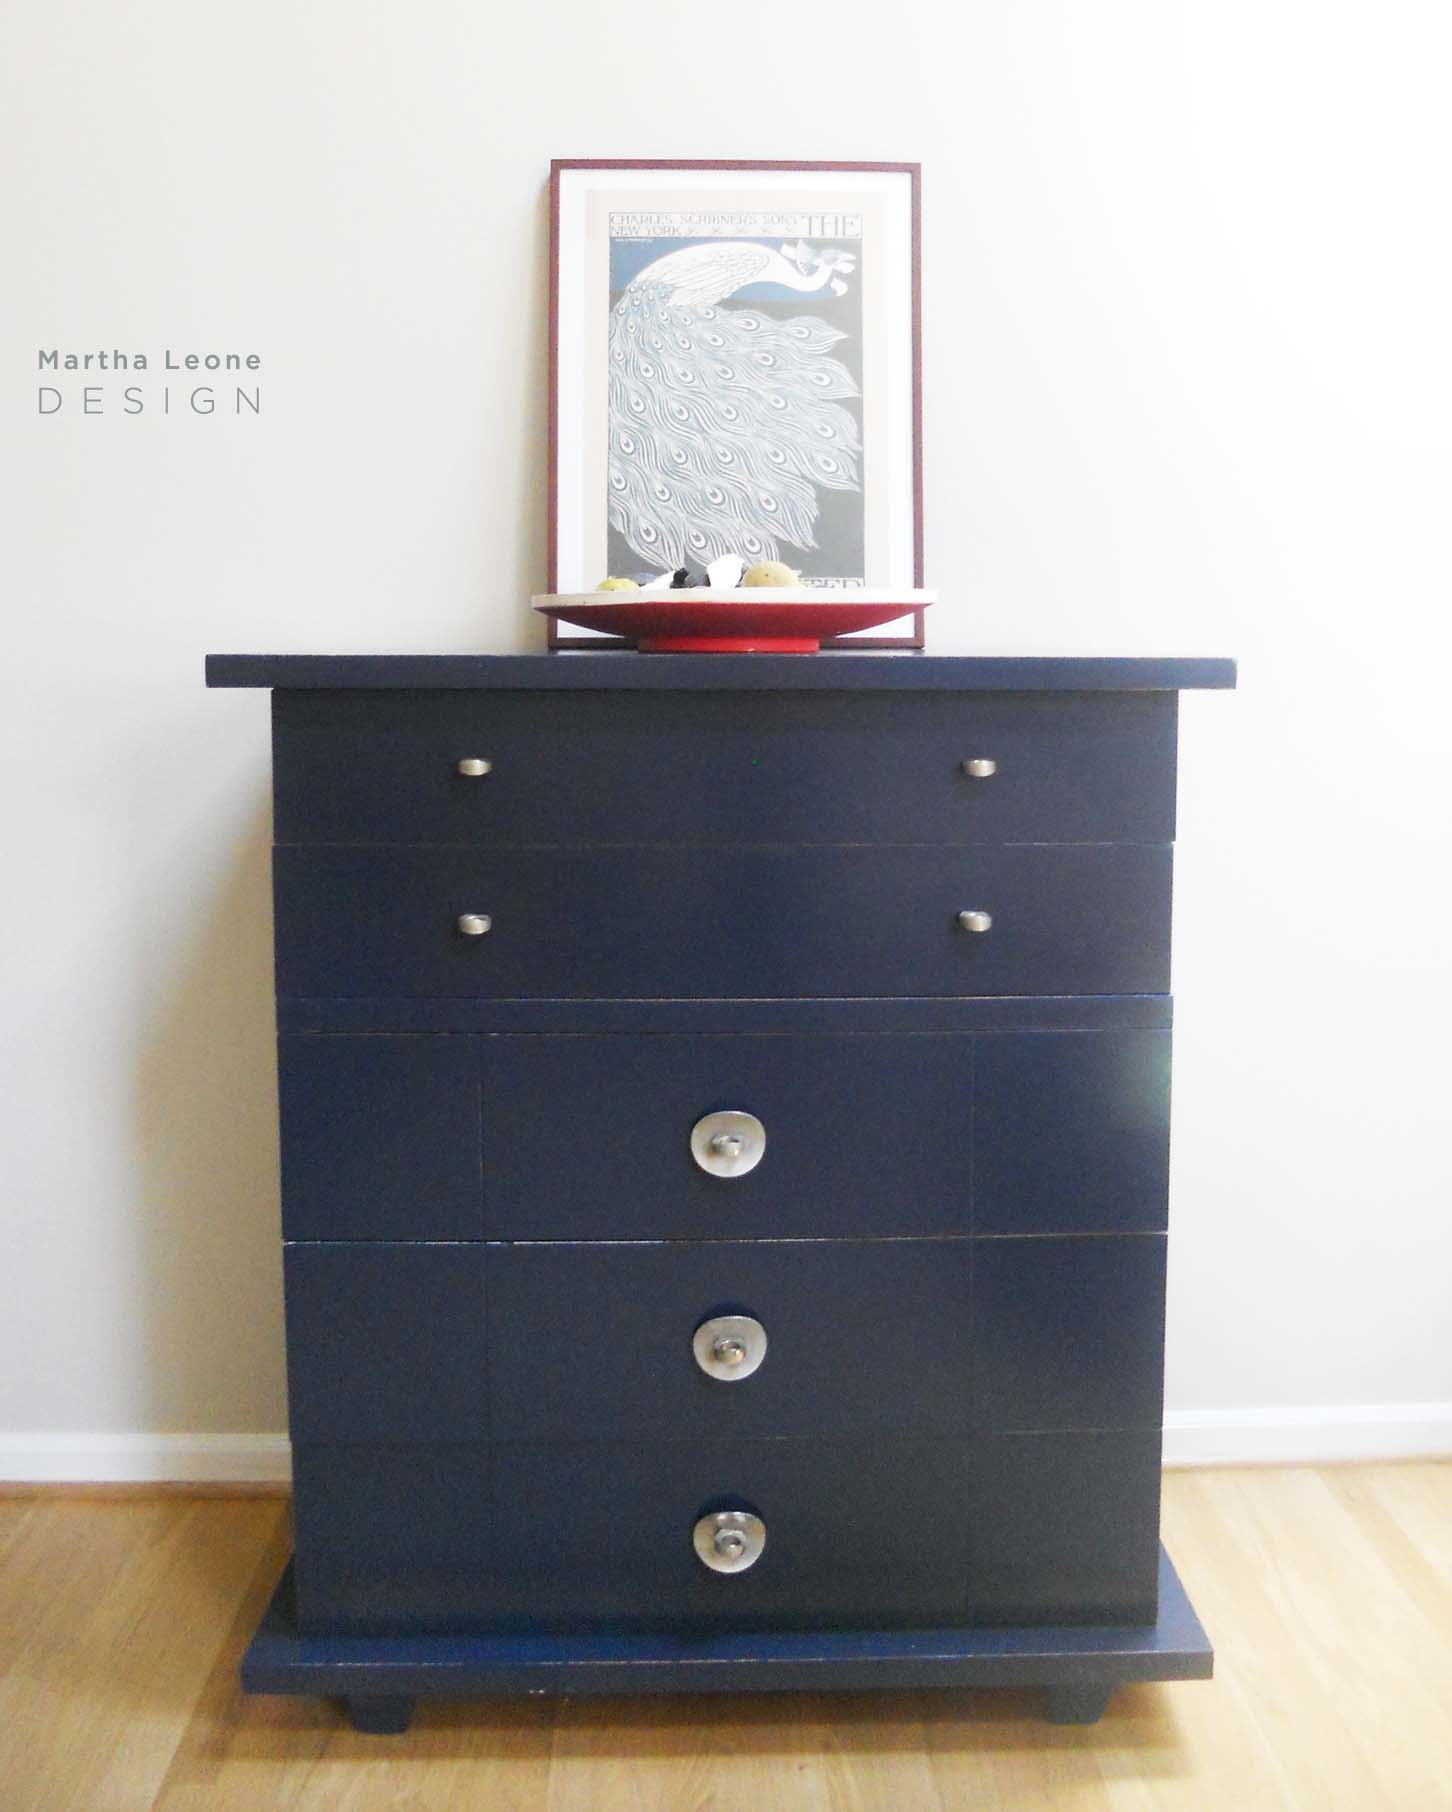 Michael Dresser3 by Martha Leone Design